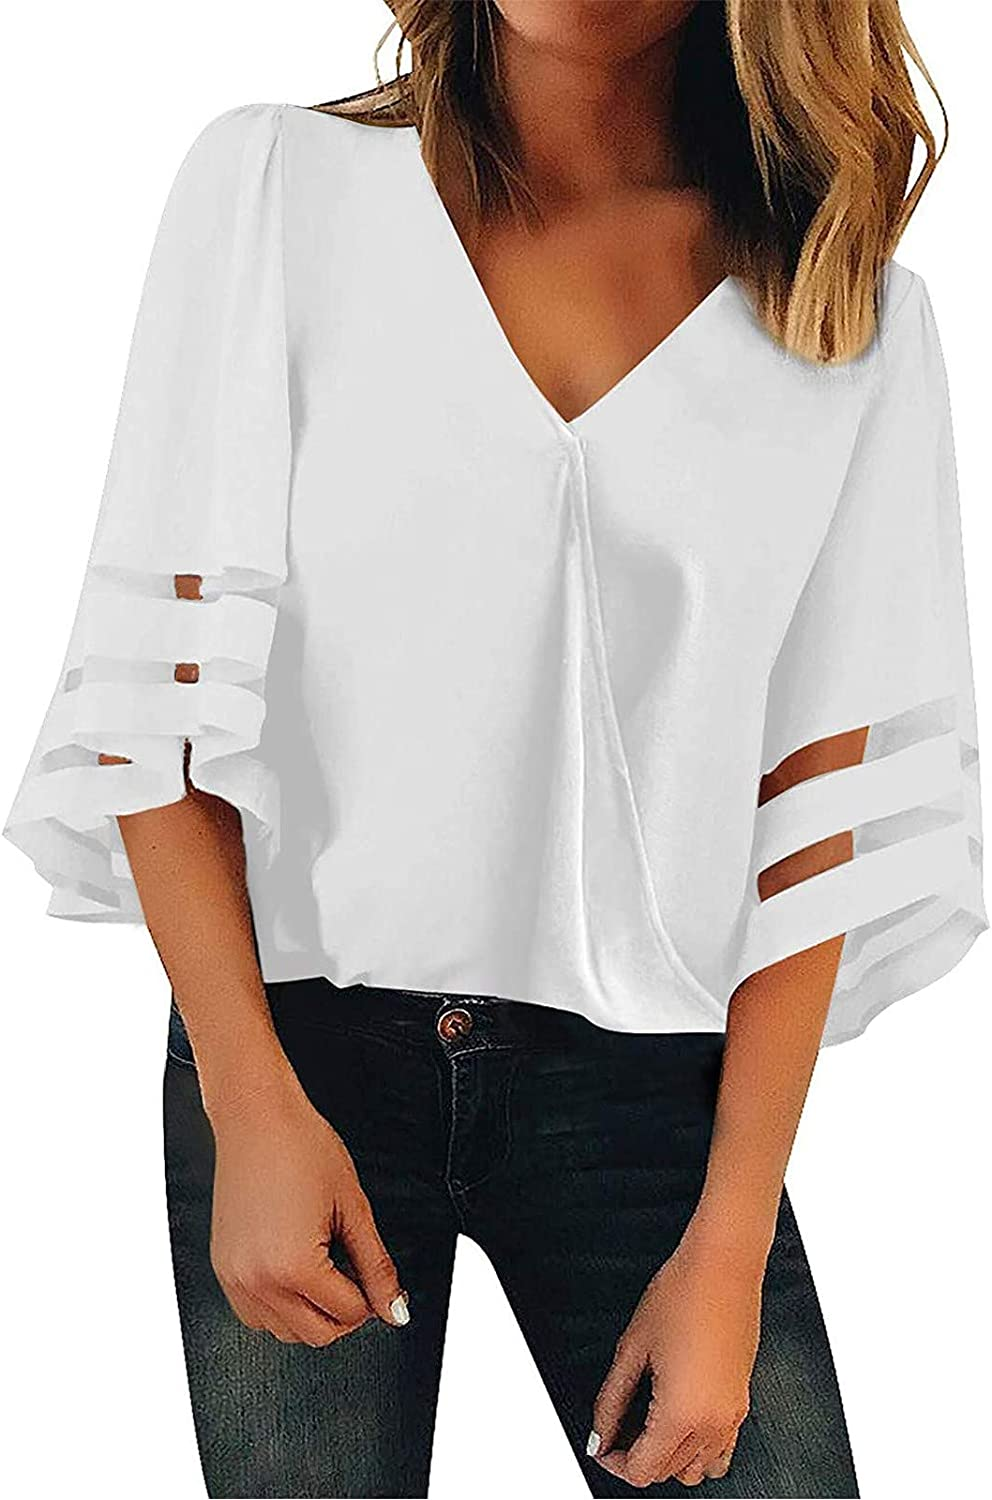 Aukbays T-Shirt for Womens Women's Cold Shoulder Loose Shirt Tops 3/4 Bell Mesh Sleeve Blouse Solid Color Tunic